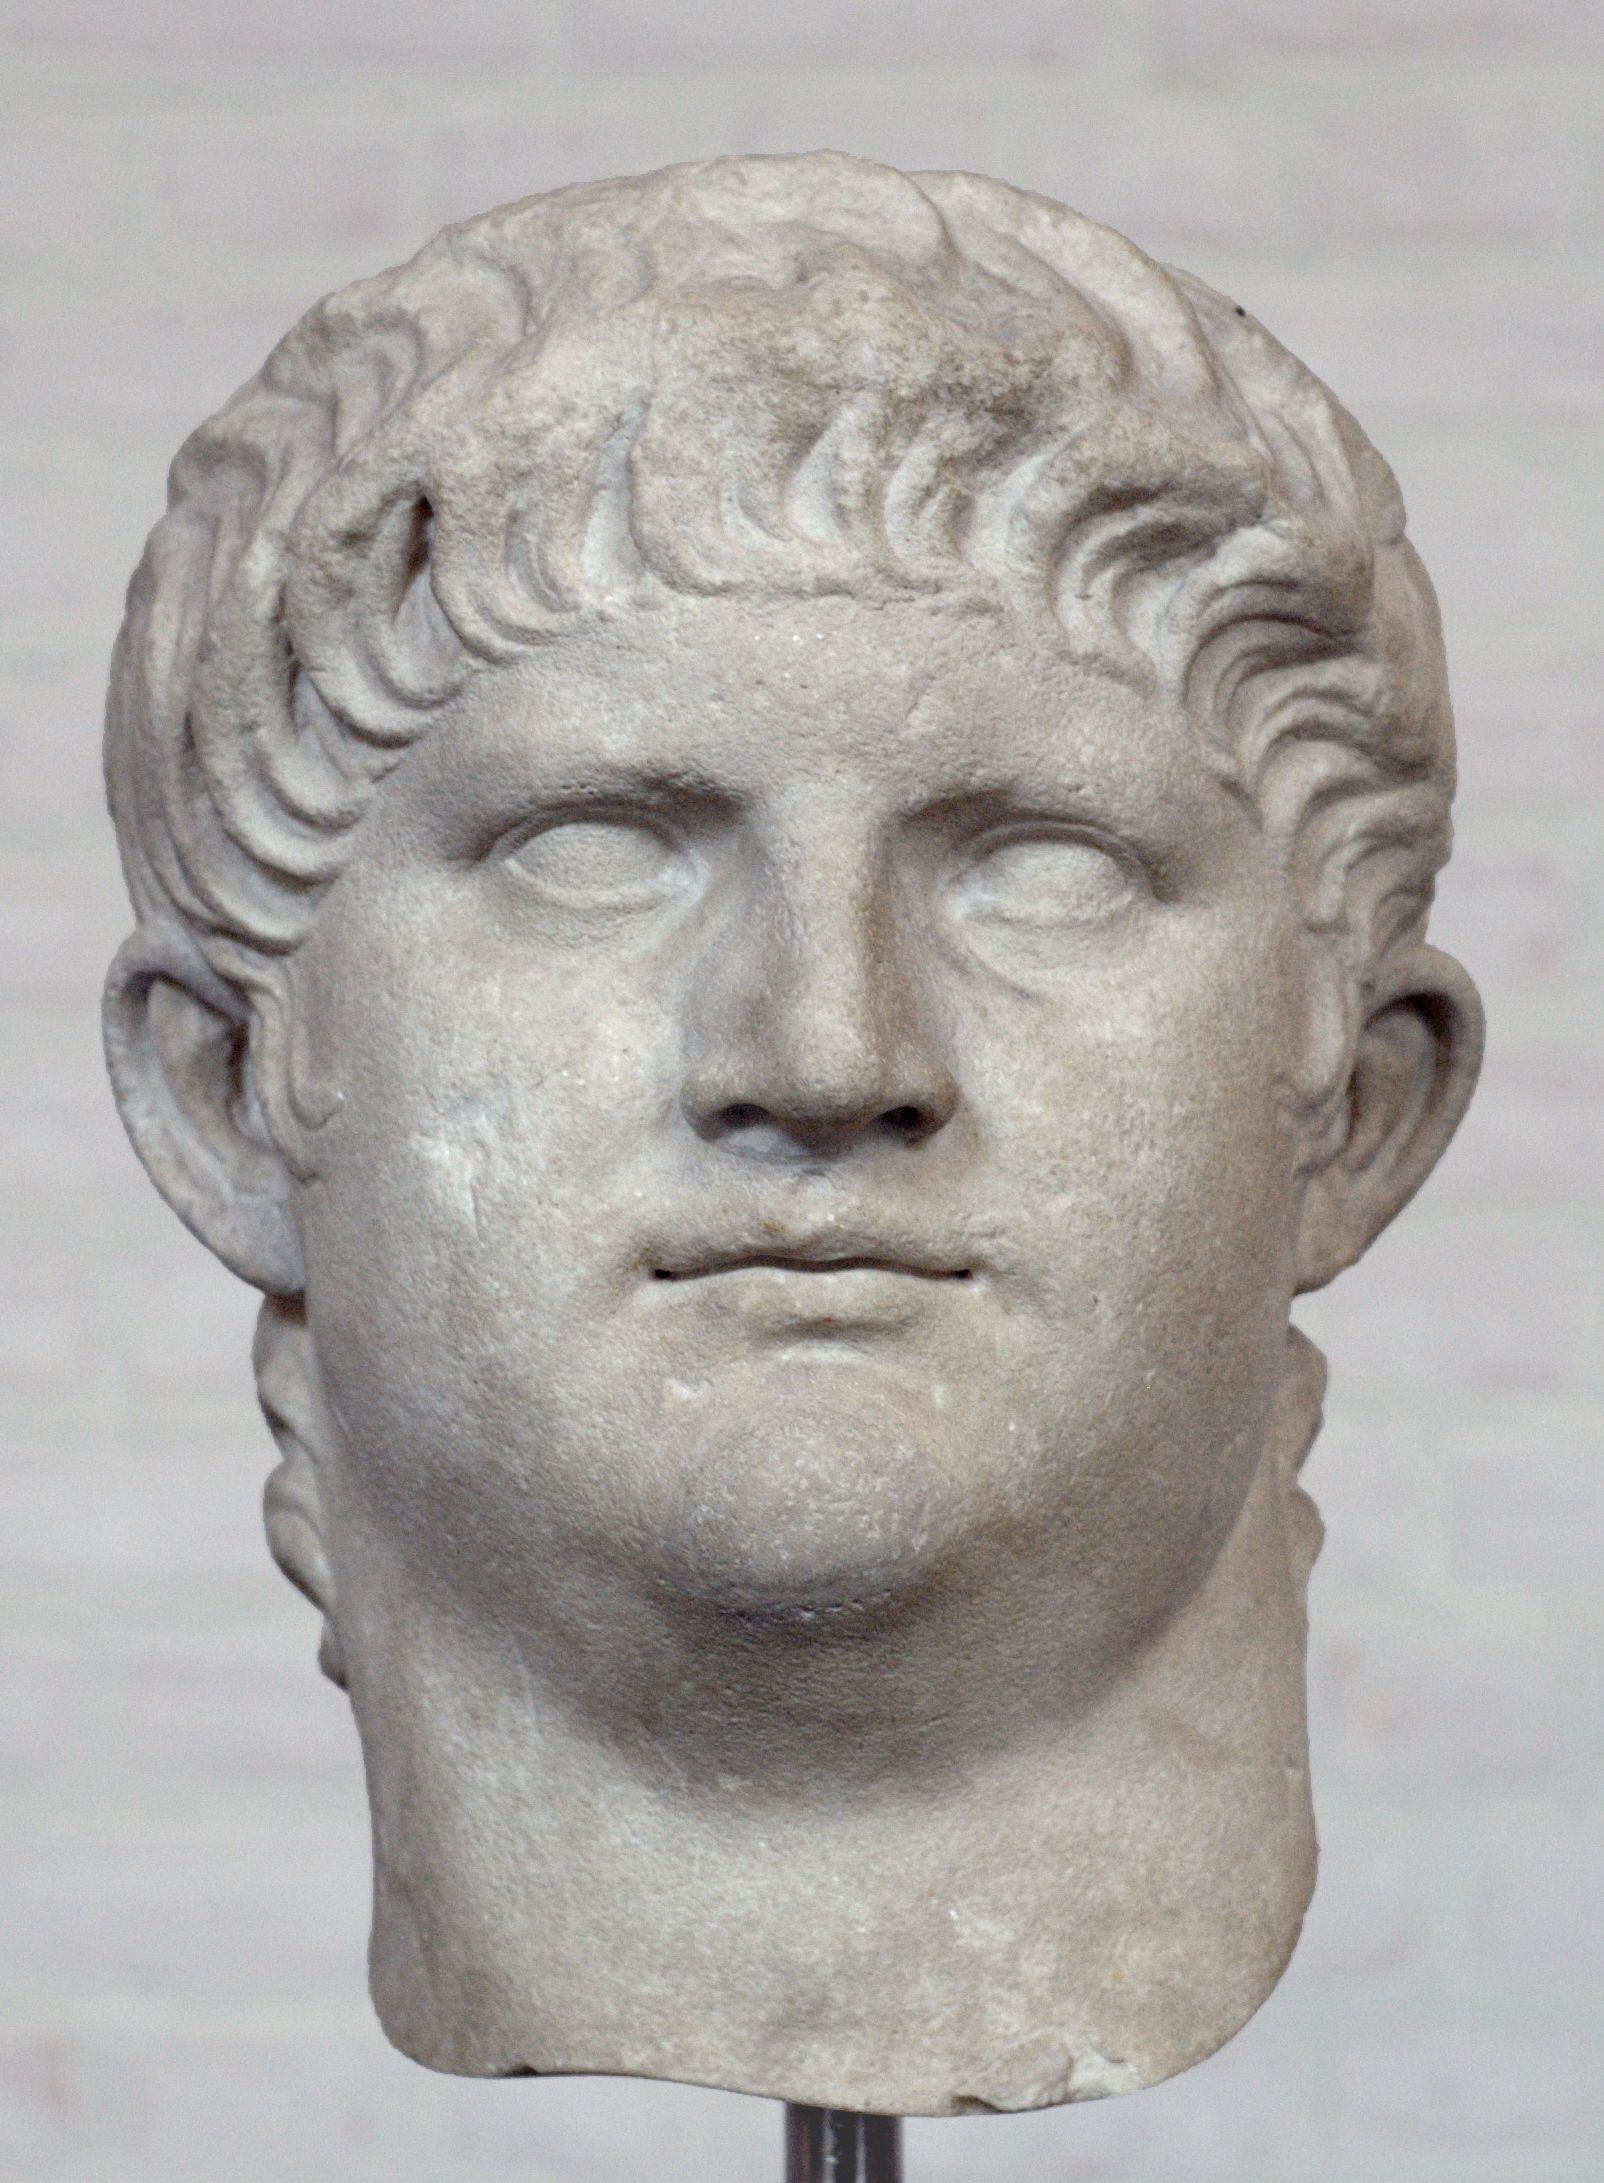 Bust of Nero at the Glyptothek Museum in Munich. Article 321. Notice the same layered hairstyle. Dated to 64-68 CE.